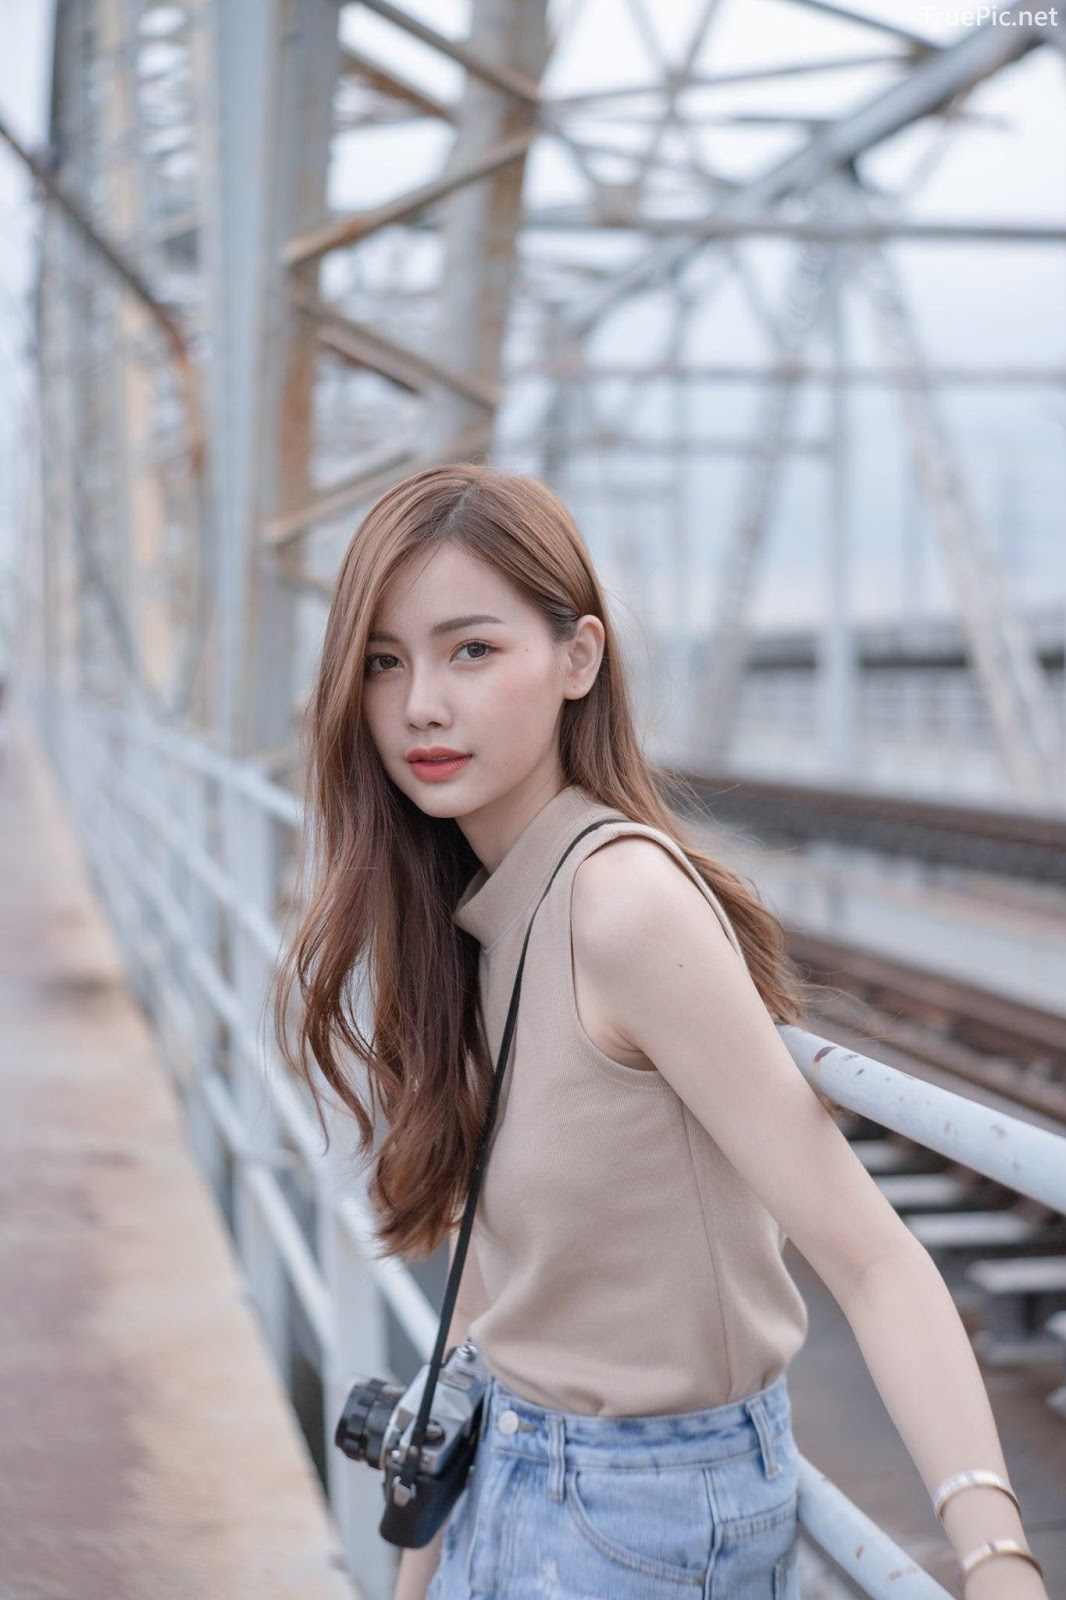 Thailand beautiful model - Pla Kewalin Udomaksorn - A beautiful morning with a cute girl - Picture 3